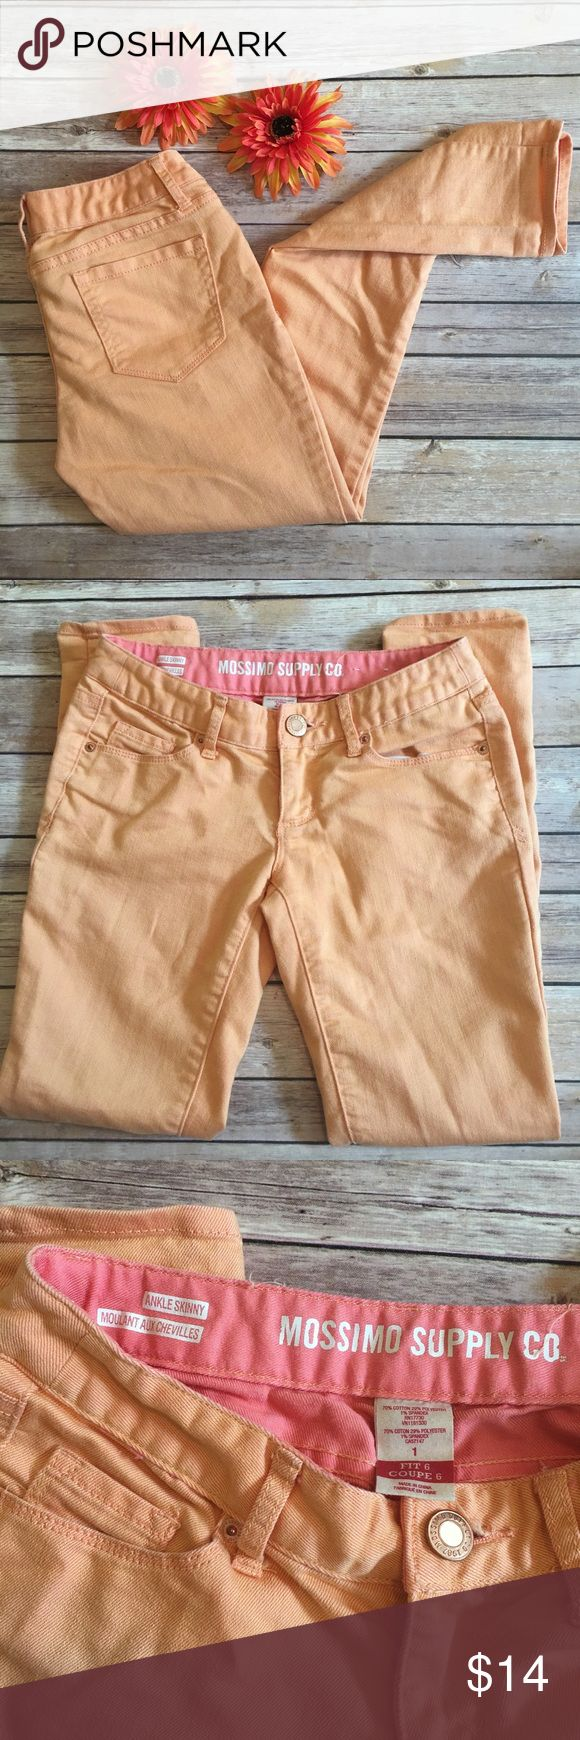 "Mossimo Peach Skinny Jeans Mossimo peach colored skinny jeans. Slight stretch and comfortable fit. Good used condition with no flaws or damages. Measurements laying flat: 27"" inseam, 12.5"" waist, 6.5"" front rise.                                                                                   ▫️No trades ▫️Reasonable offers welcomed (through offer button only) ▫️I'm unable to model ▫️Bundle to save! Mossimo Supply Co. Jeans Skinny"